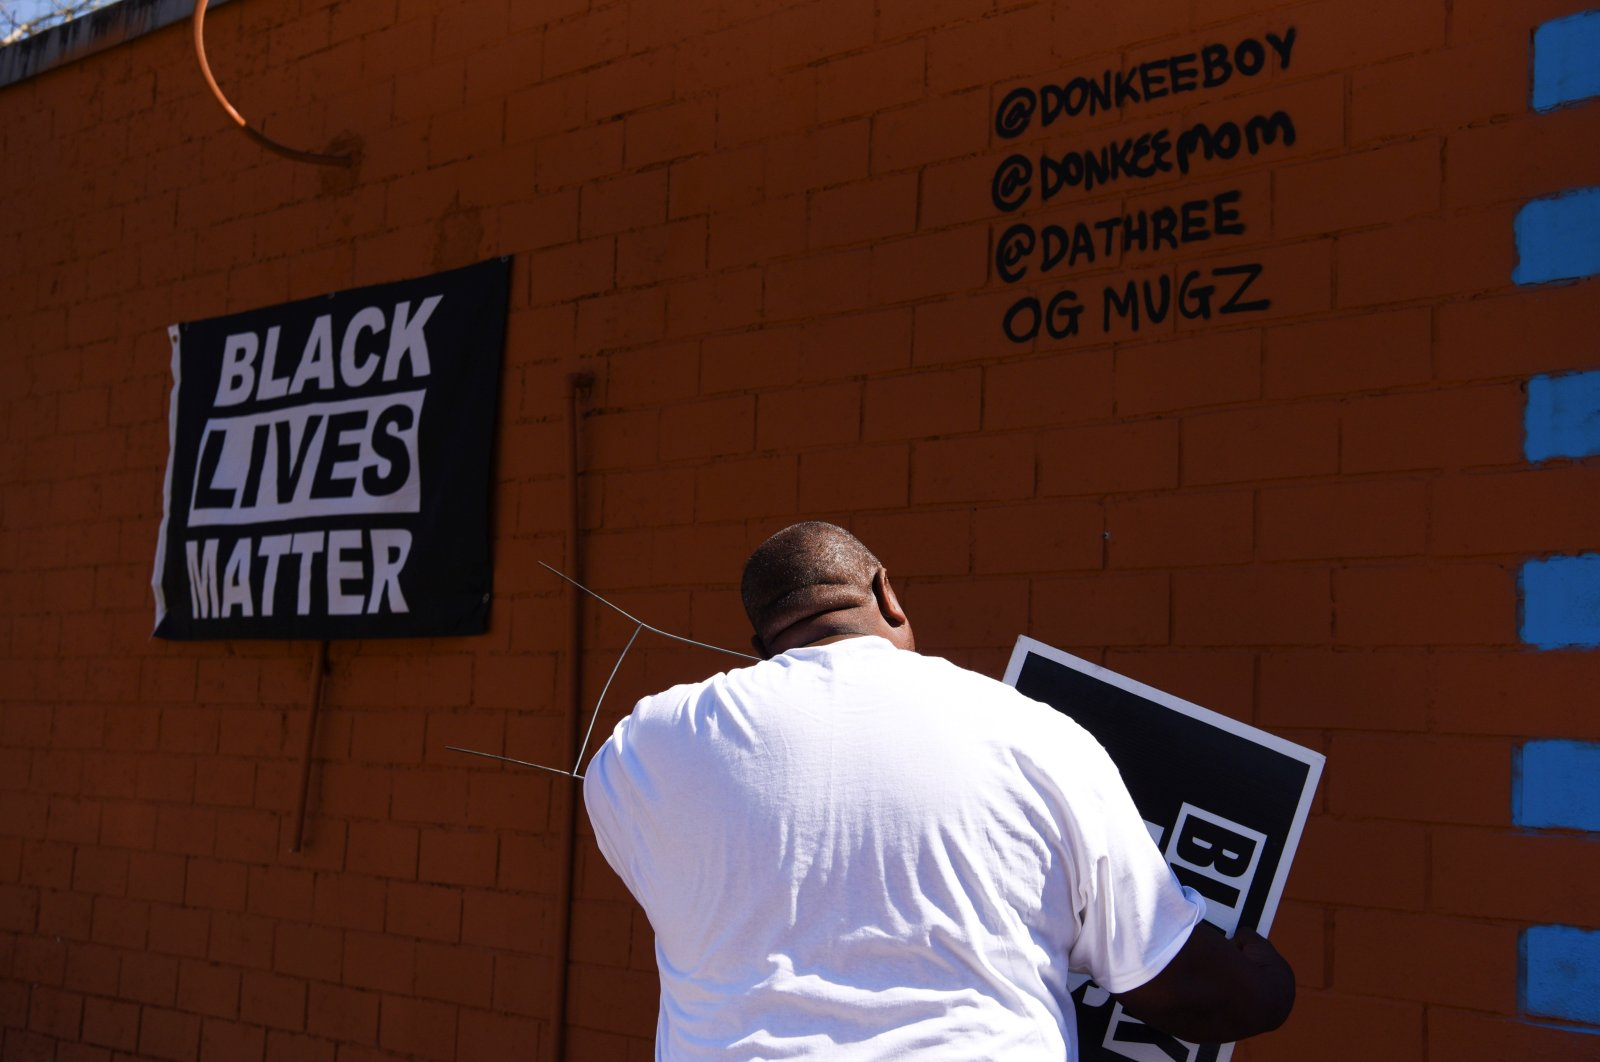 Travis Cains, who grew up in Cuney Homes with George Floyd, adjusts a Black Lives Matter sign in front of a mural of Floyd in the Third Ward ahead of the trial of the former Minneapolis cop Derek Chauvin in Houston, Texas, U.S., March 3, 2021. (Reuters Photo)